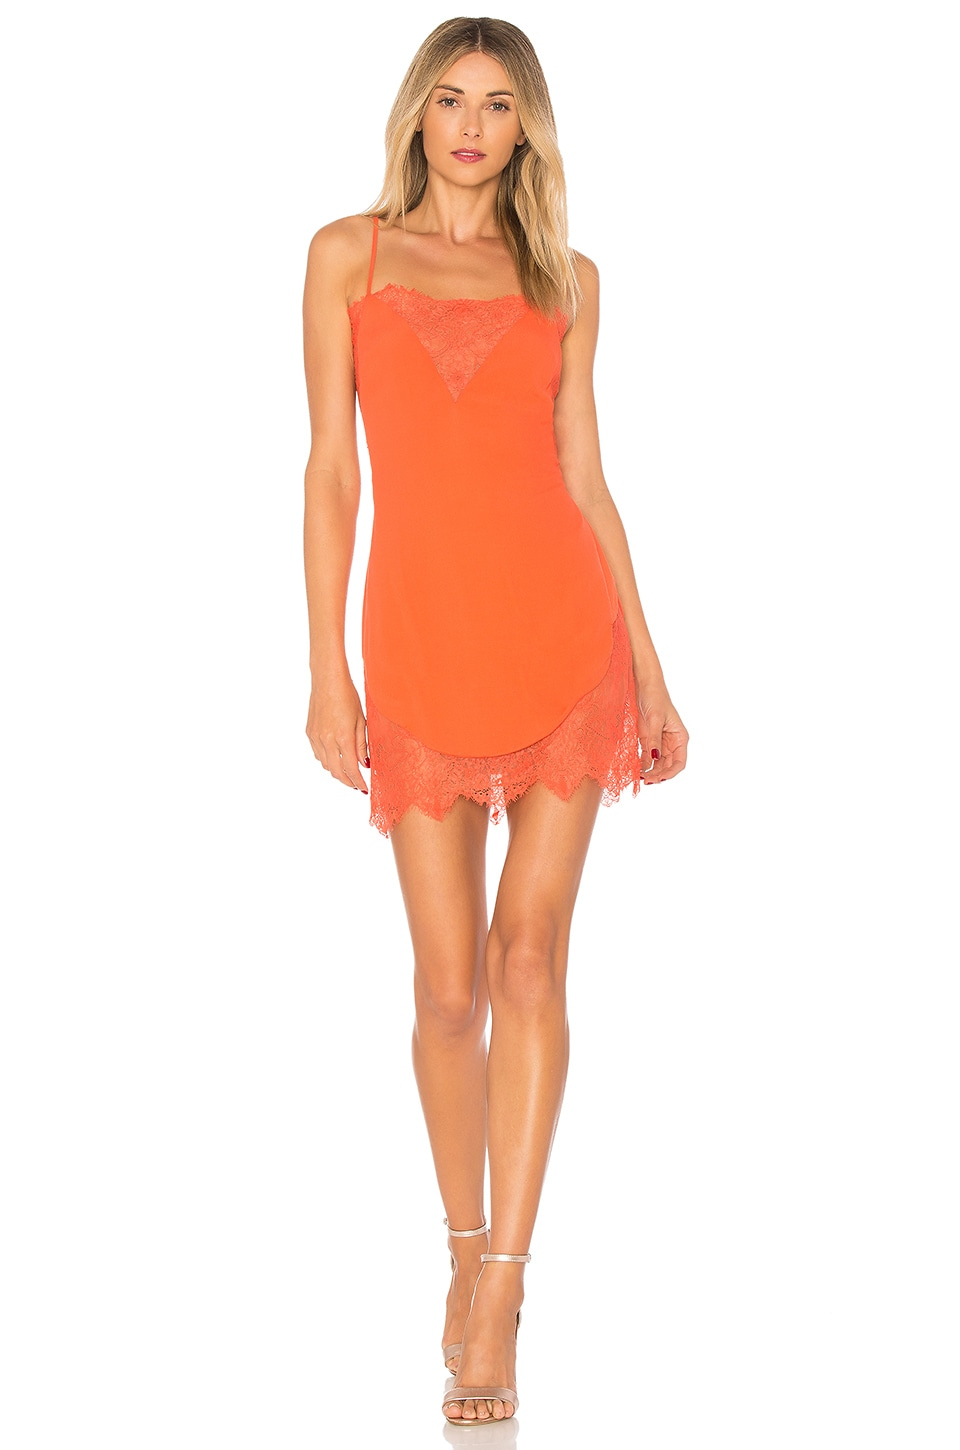 X by NBD Kennedy Dress in Coral